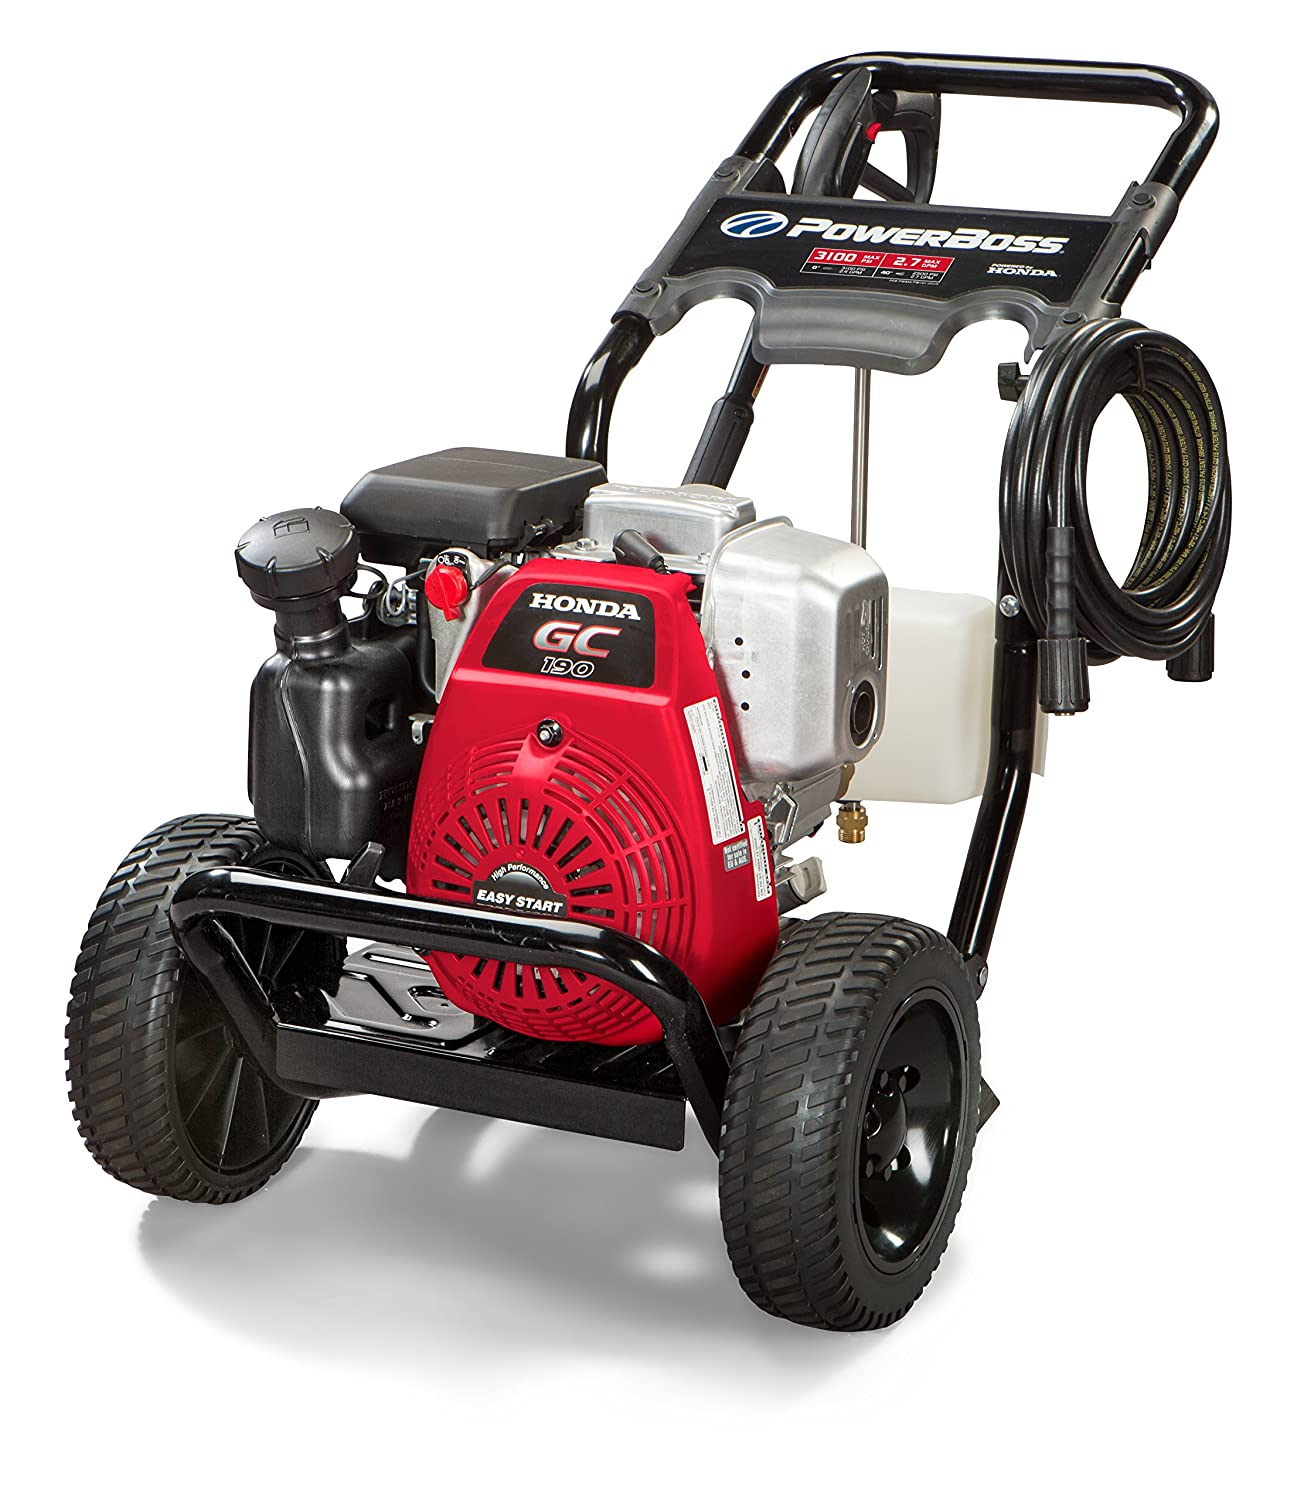 Superb Amazon.com : PowerBoss Gas Pressure Washer 3100 PSI, 2.7 GPM Powered By  HONDA GC190 Engine With 25u0027 High Pressure Hose, 4 Nozzles U0026 Detergent Tank  : Garden ...